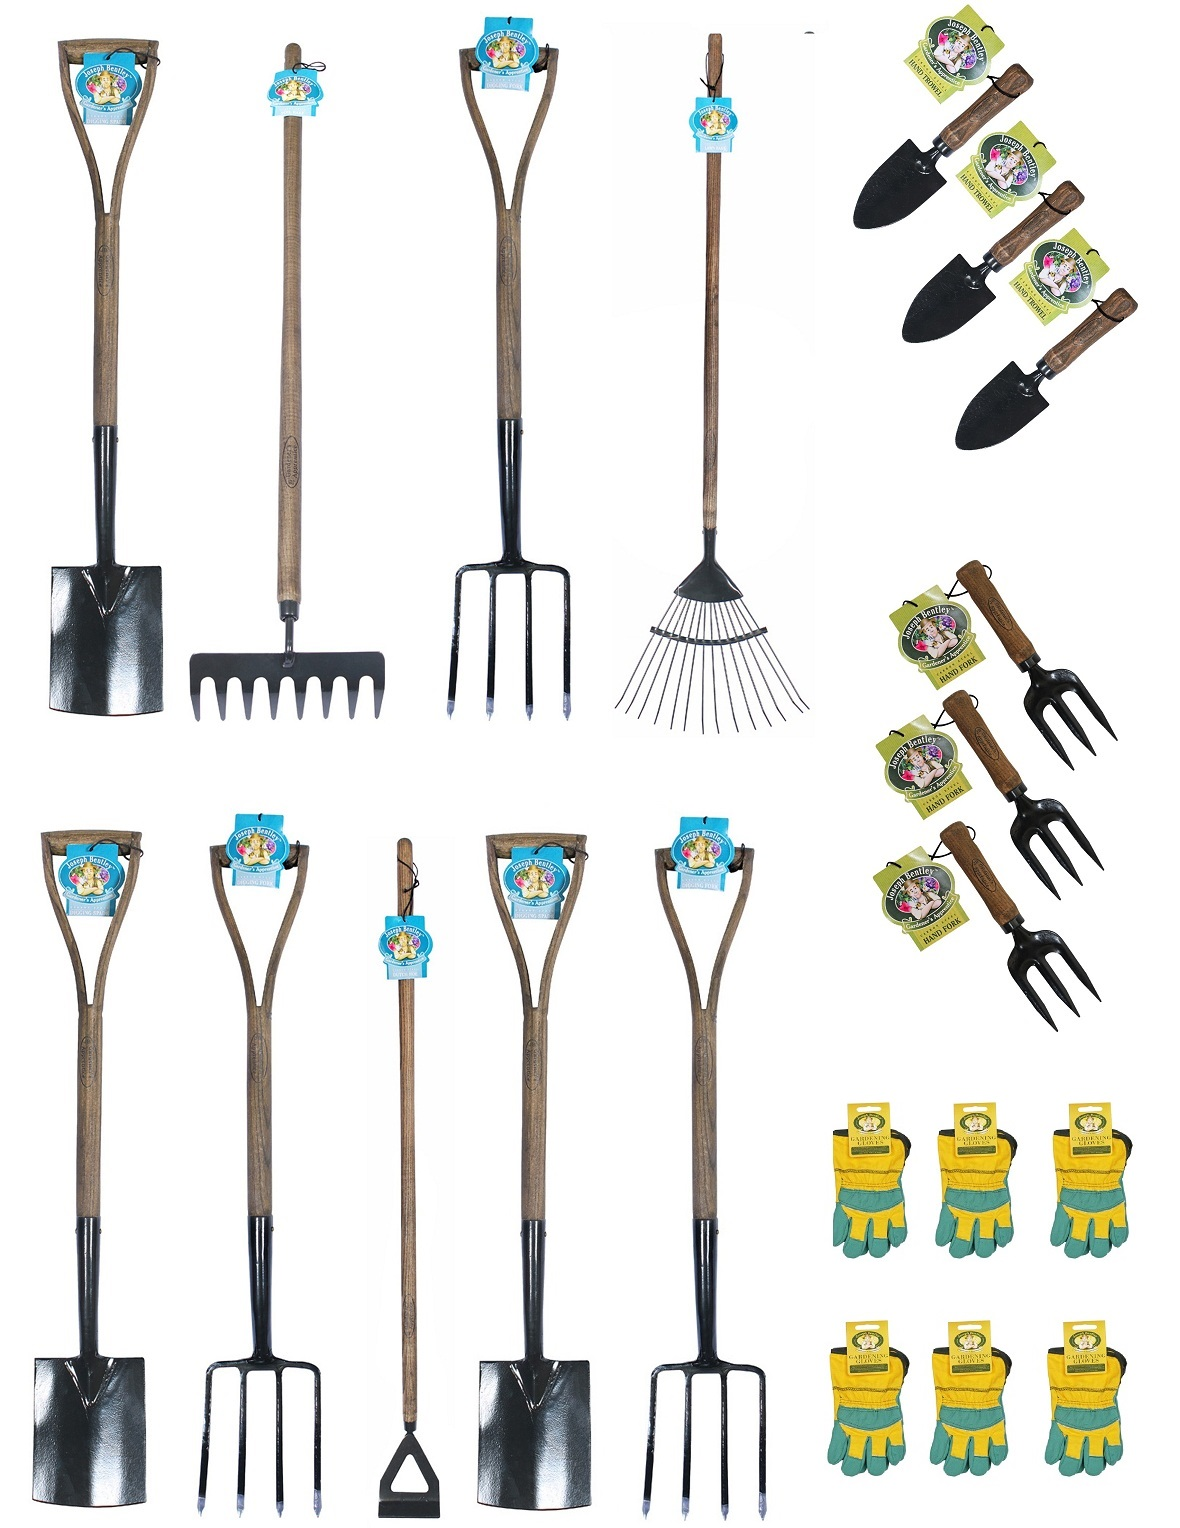 Tools used for gardening 94 for Gardening tools list 94